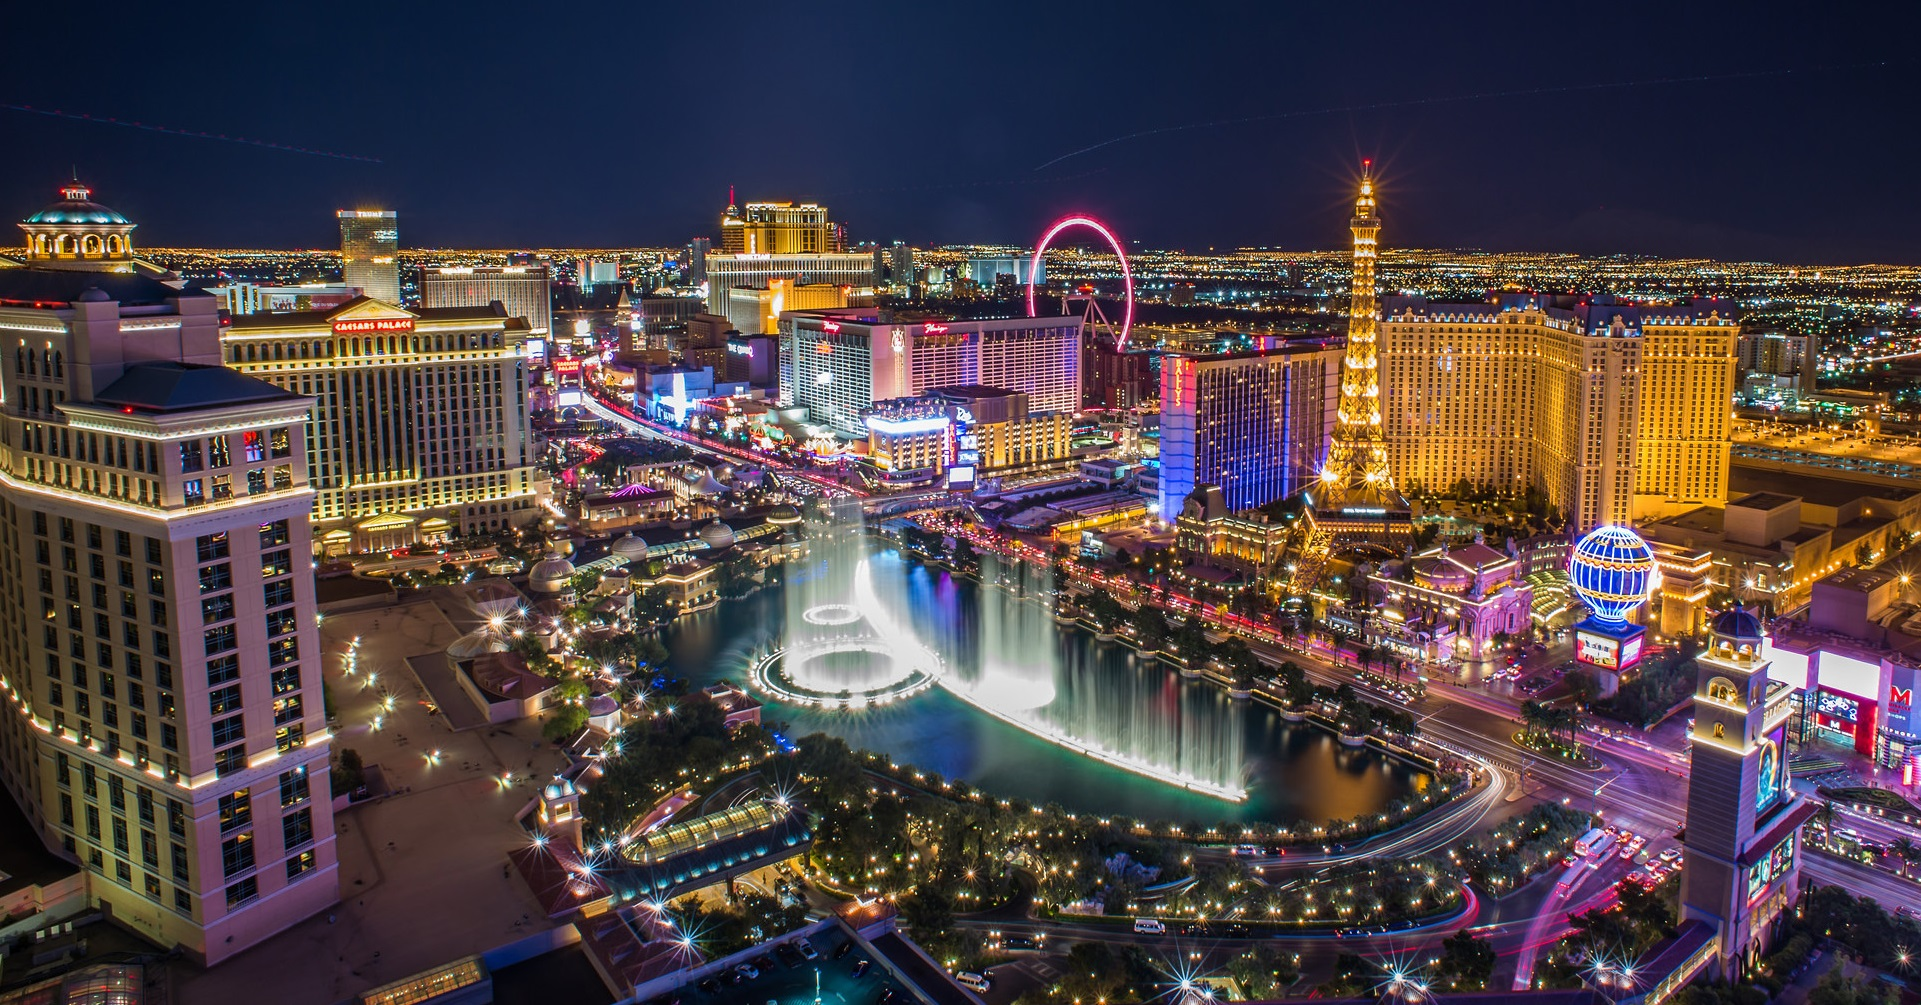 Aerial View of Las Vegas At Night